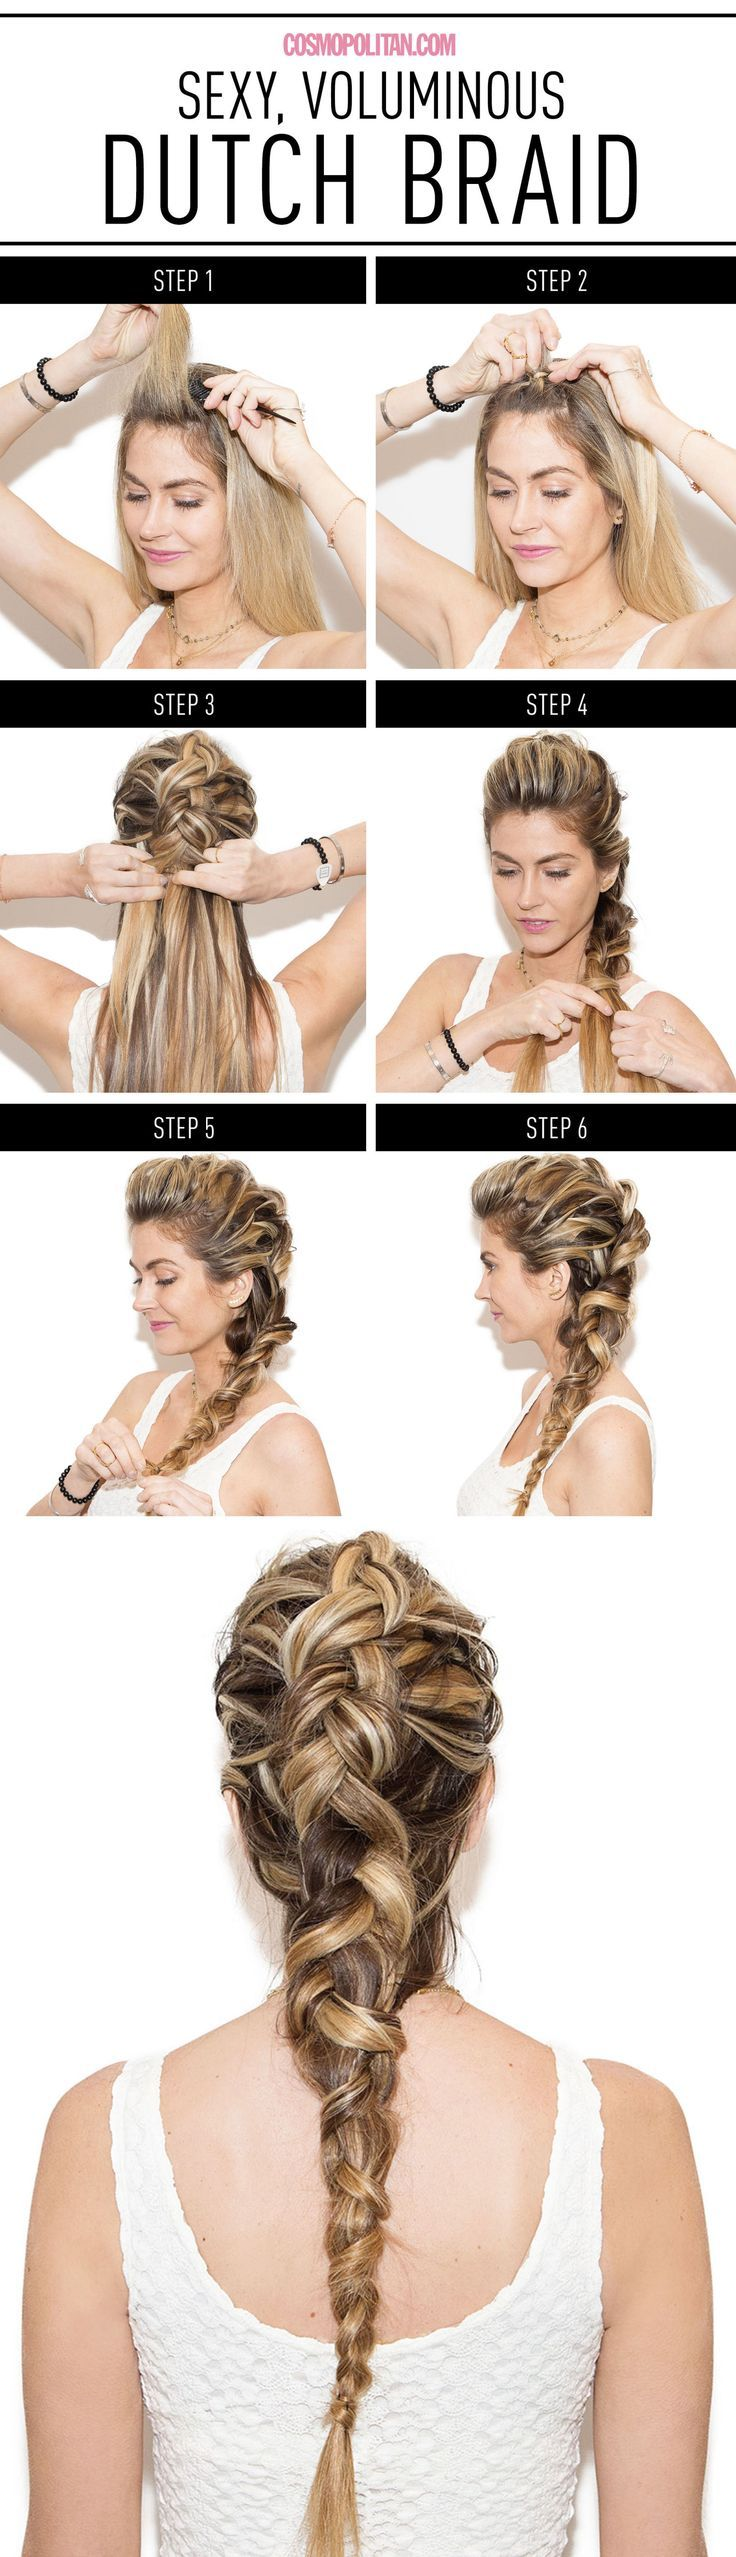 Your New Favorite Braid Will Make You Look So Hot / Cosmopolitan You want see more, follow me on Instagram, Pinterest and snapchat IG frnd_sg SC feefe_gamboa